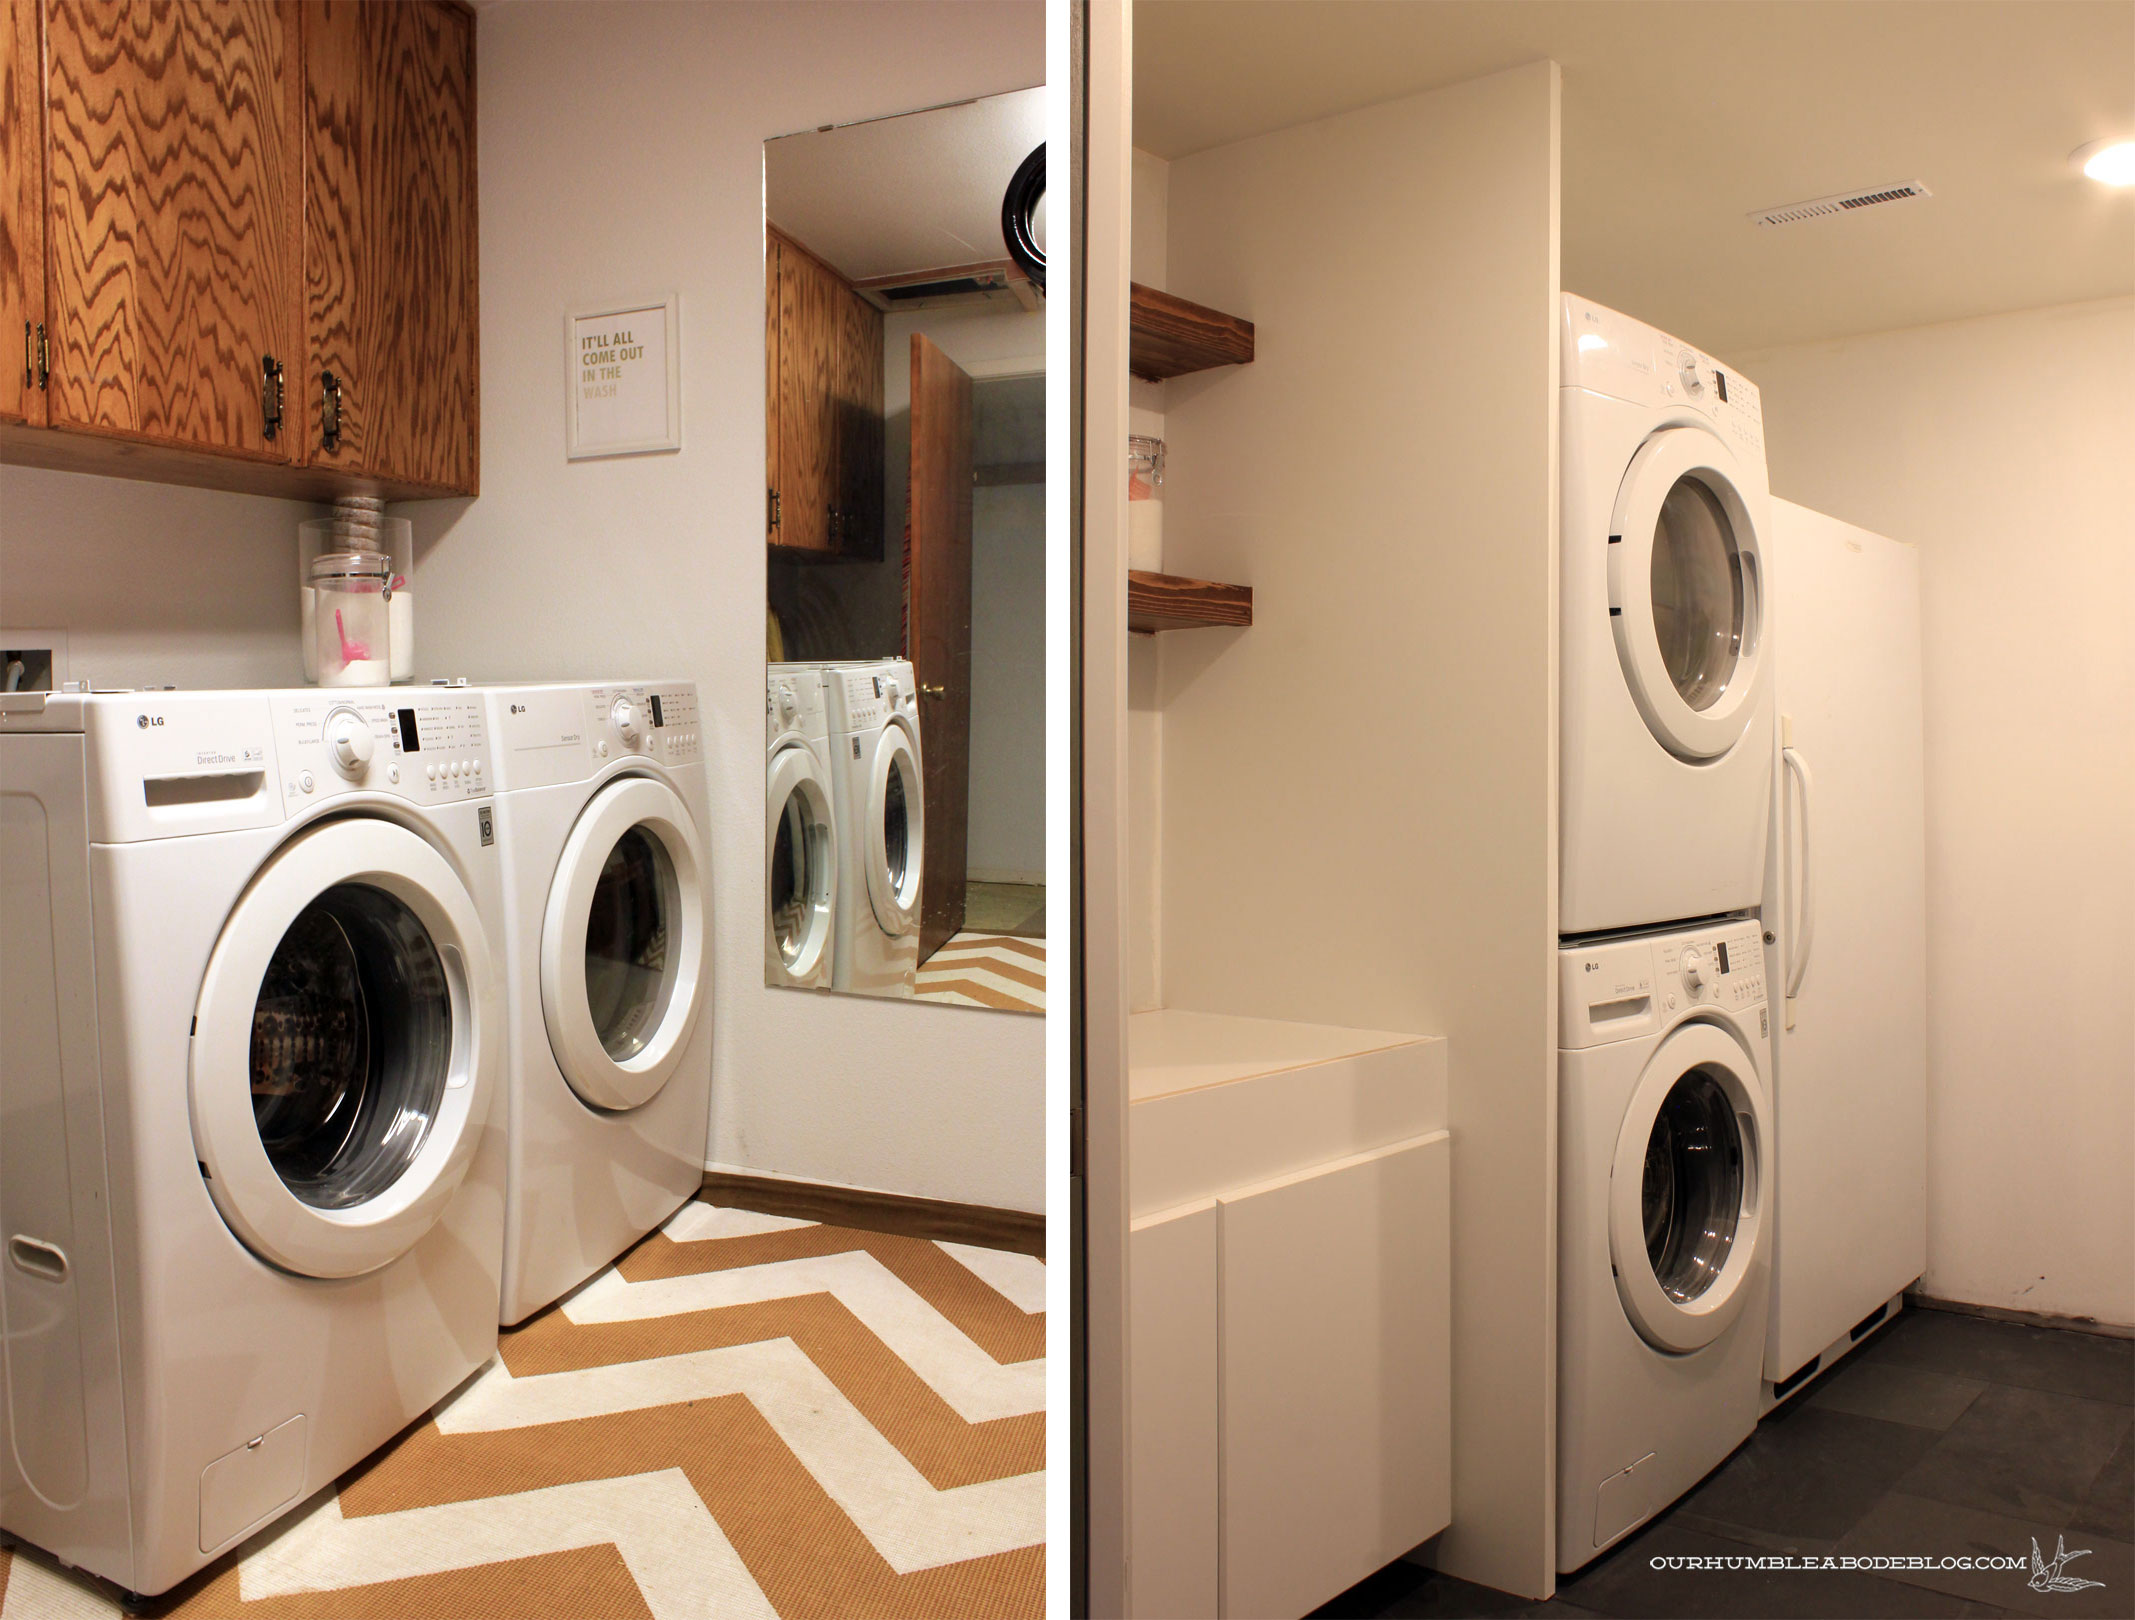 Basement Laundry Room Before And After Basement-Laundry-Room-...